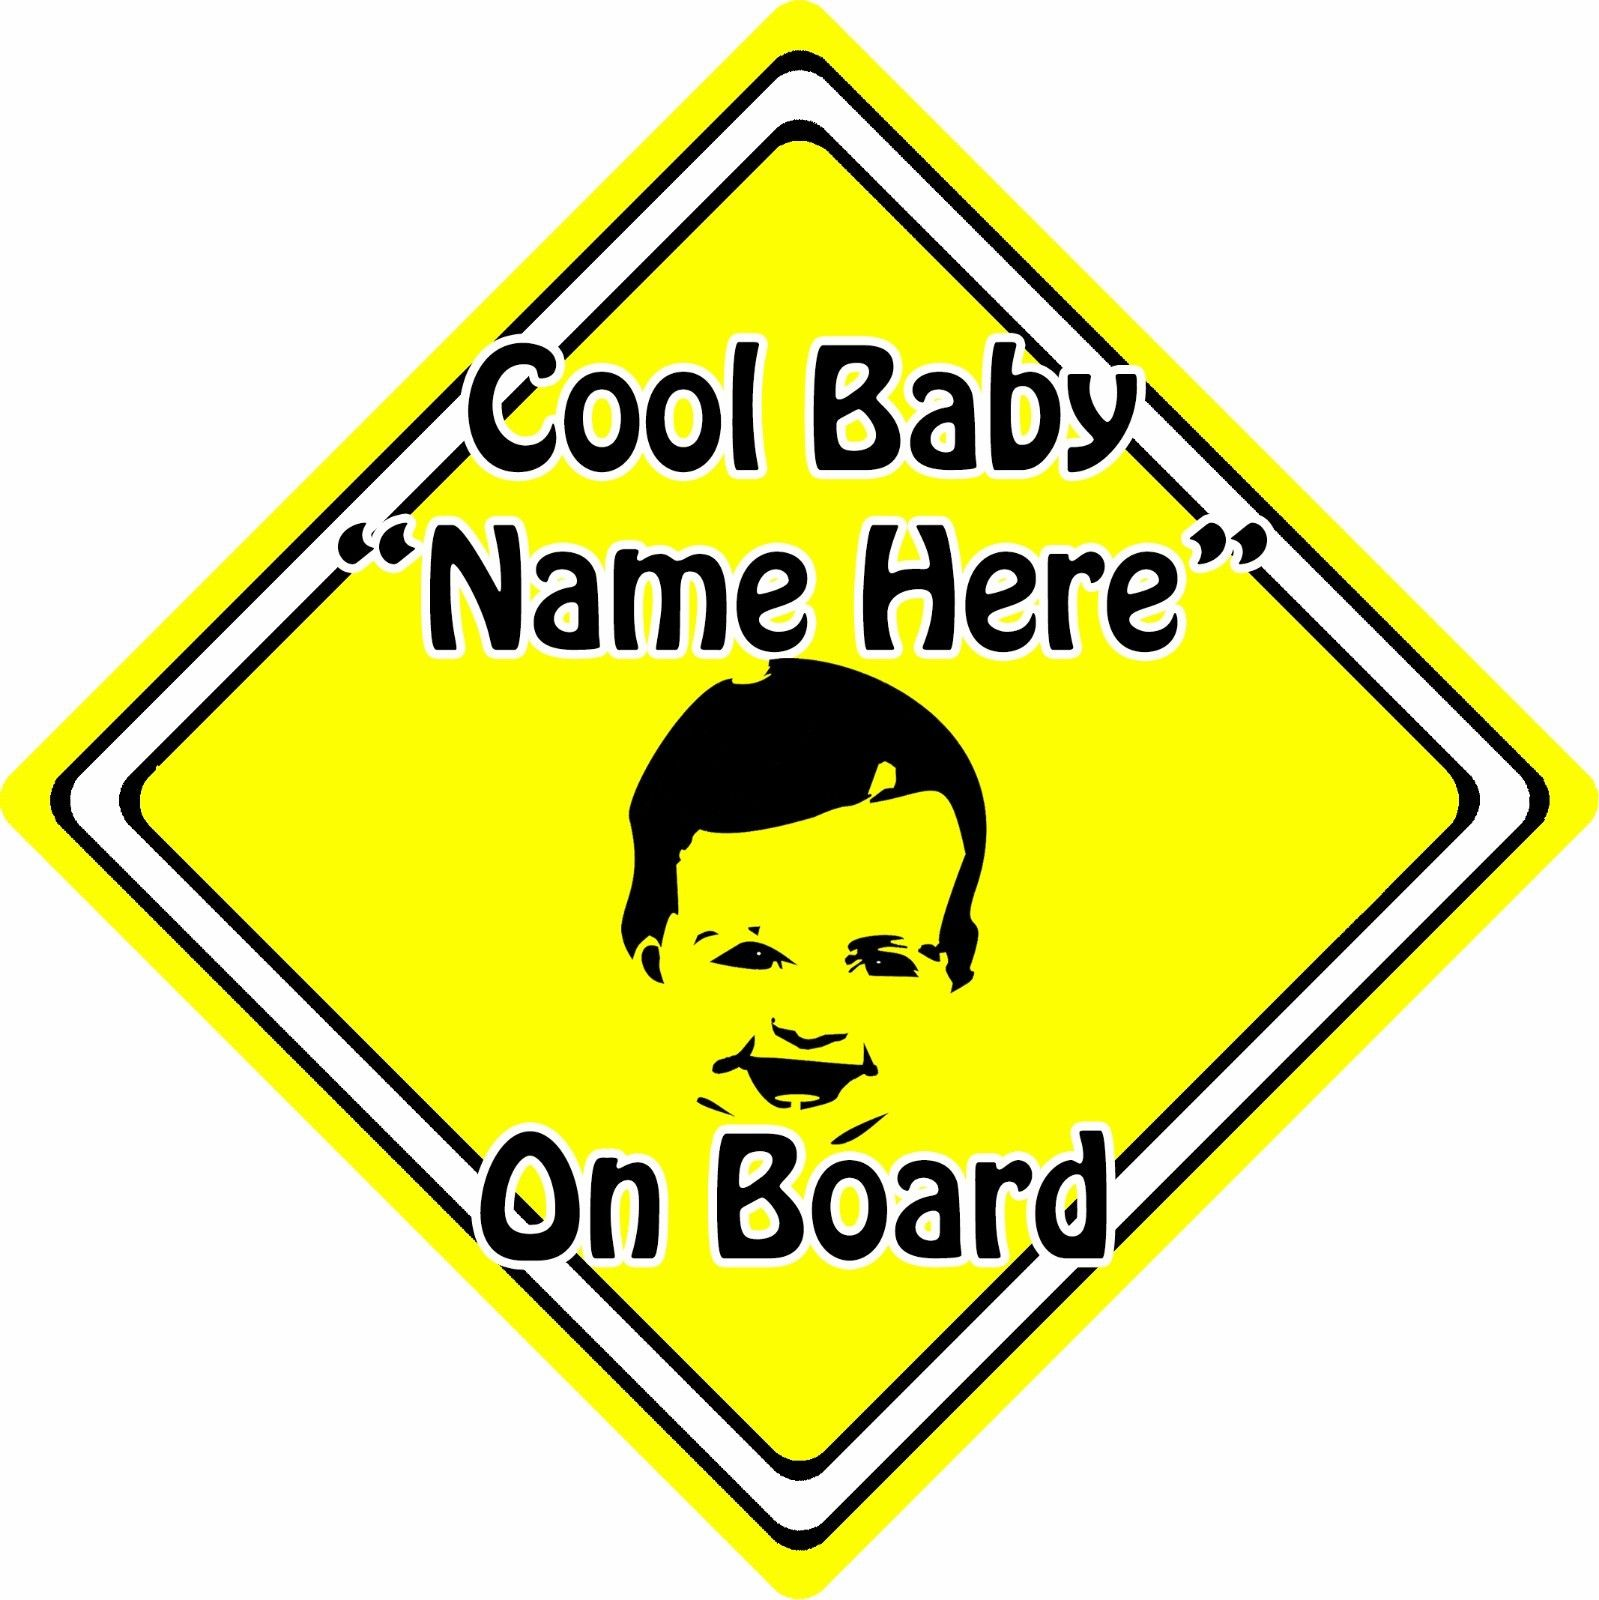 Personalised-Cool-BabyChild-On-Board-Car-Sign-Baby-Face-Silhouette-Yellow-152406129673